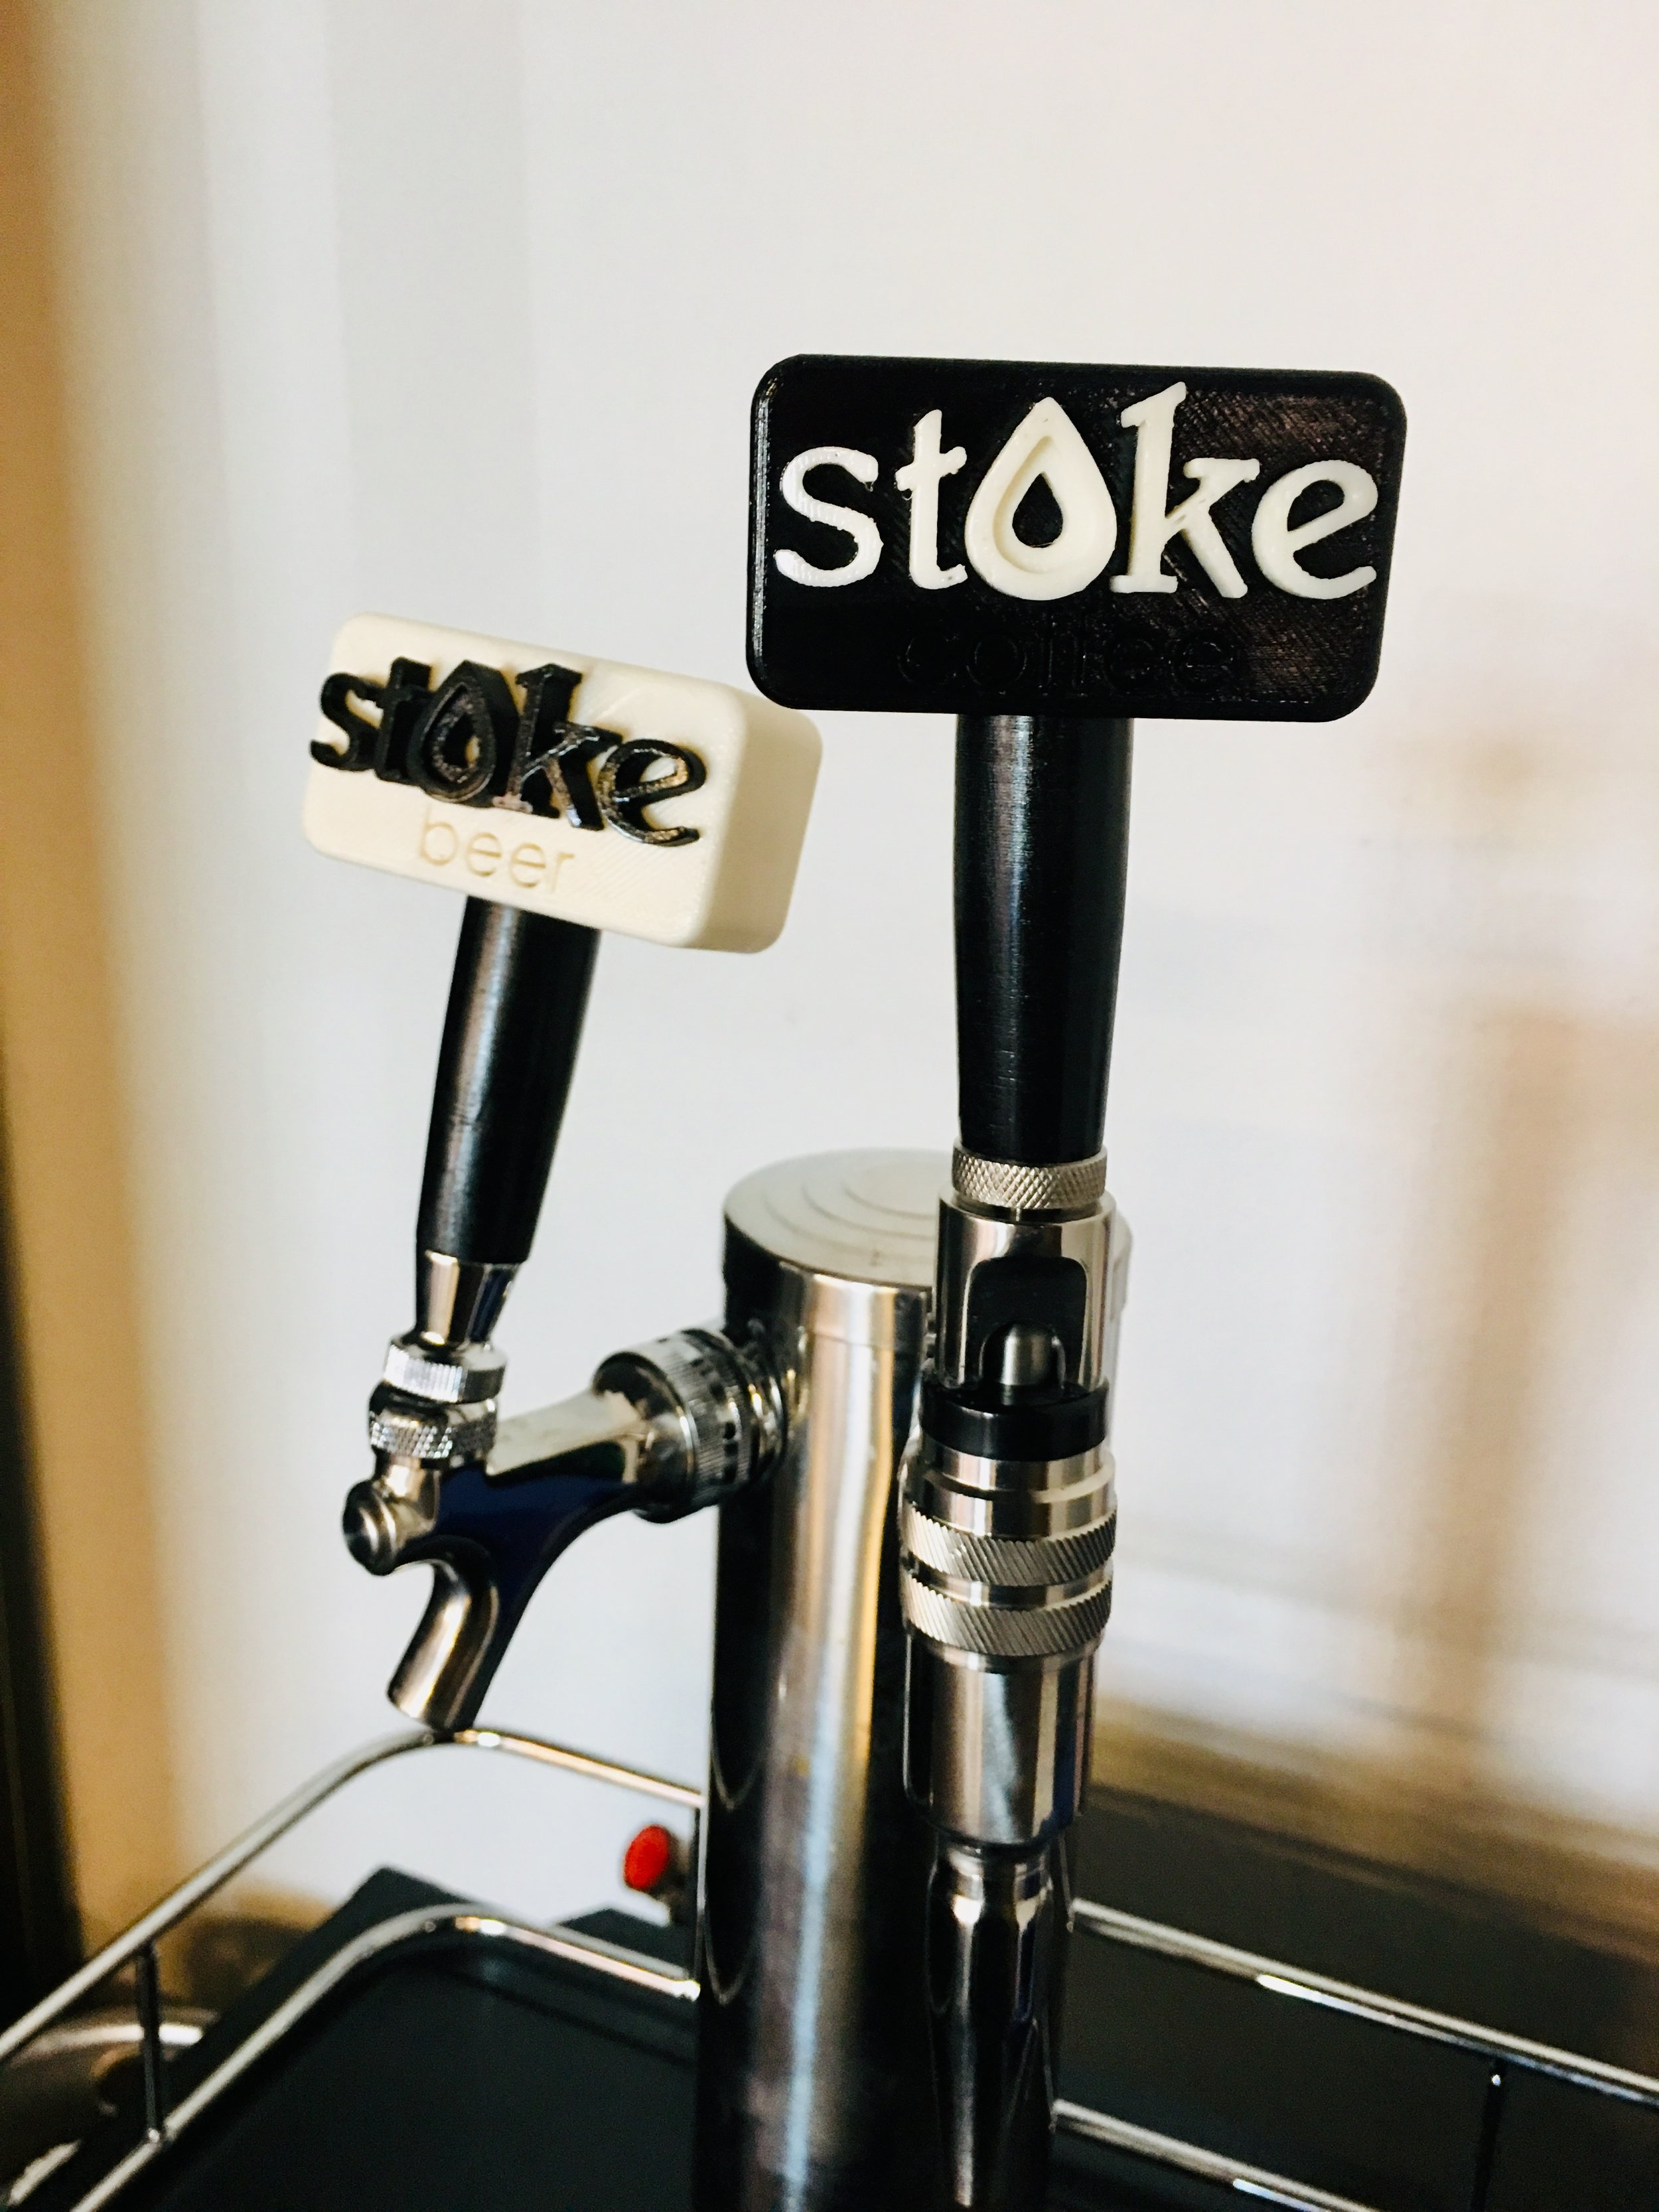 Stoke beer and cold brew tap handles.jpg